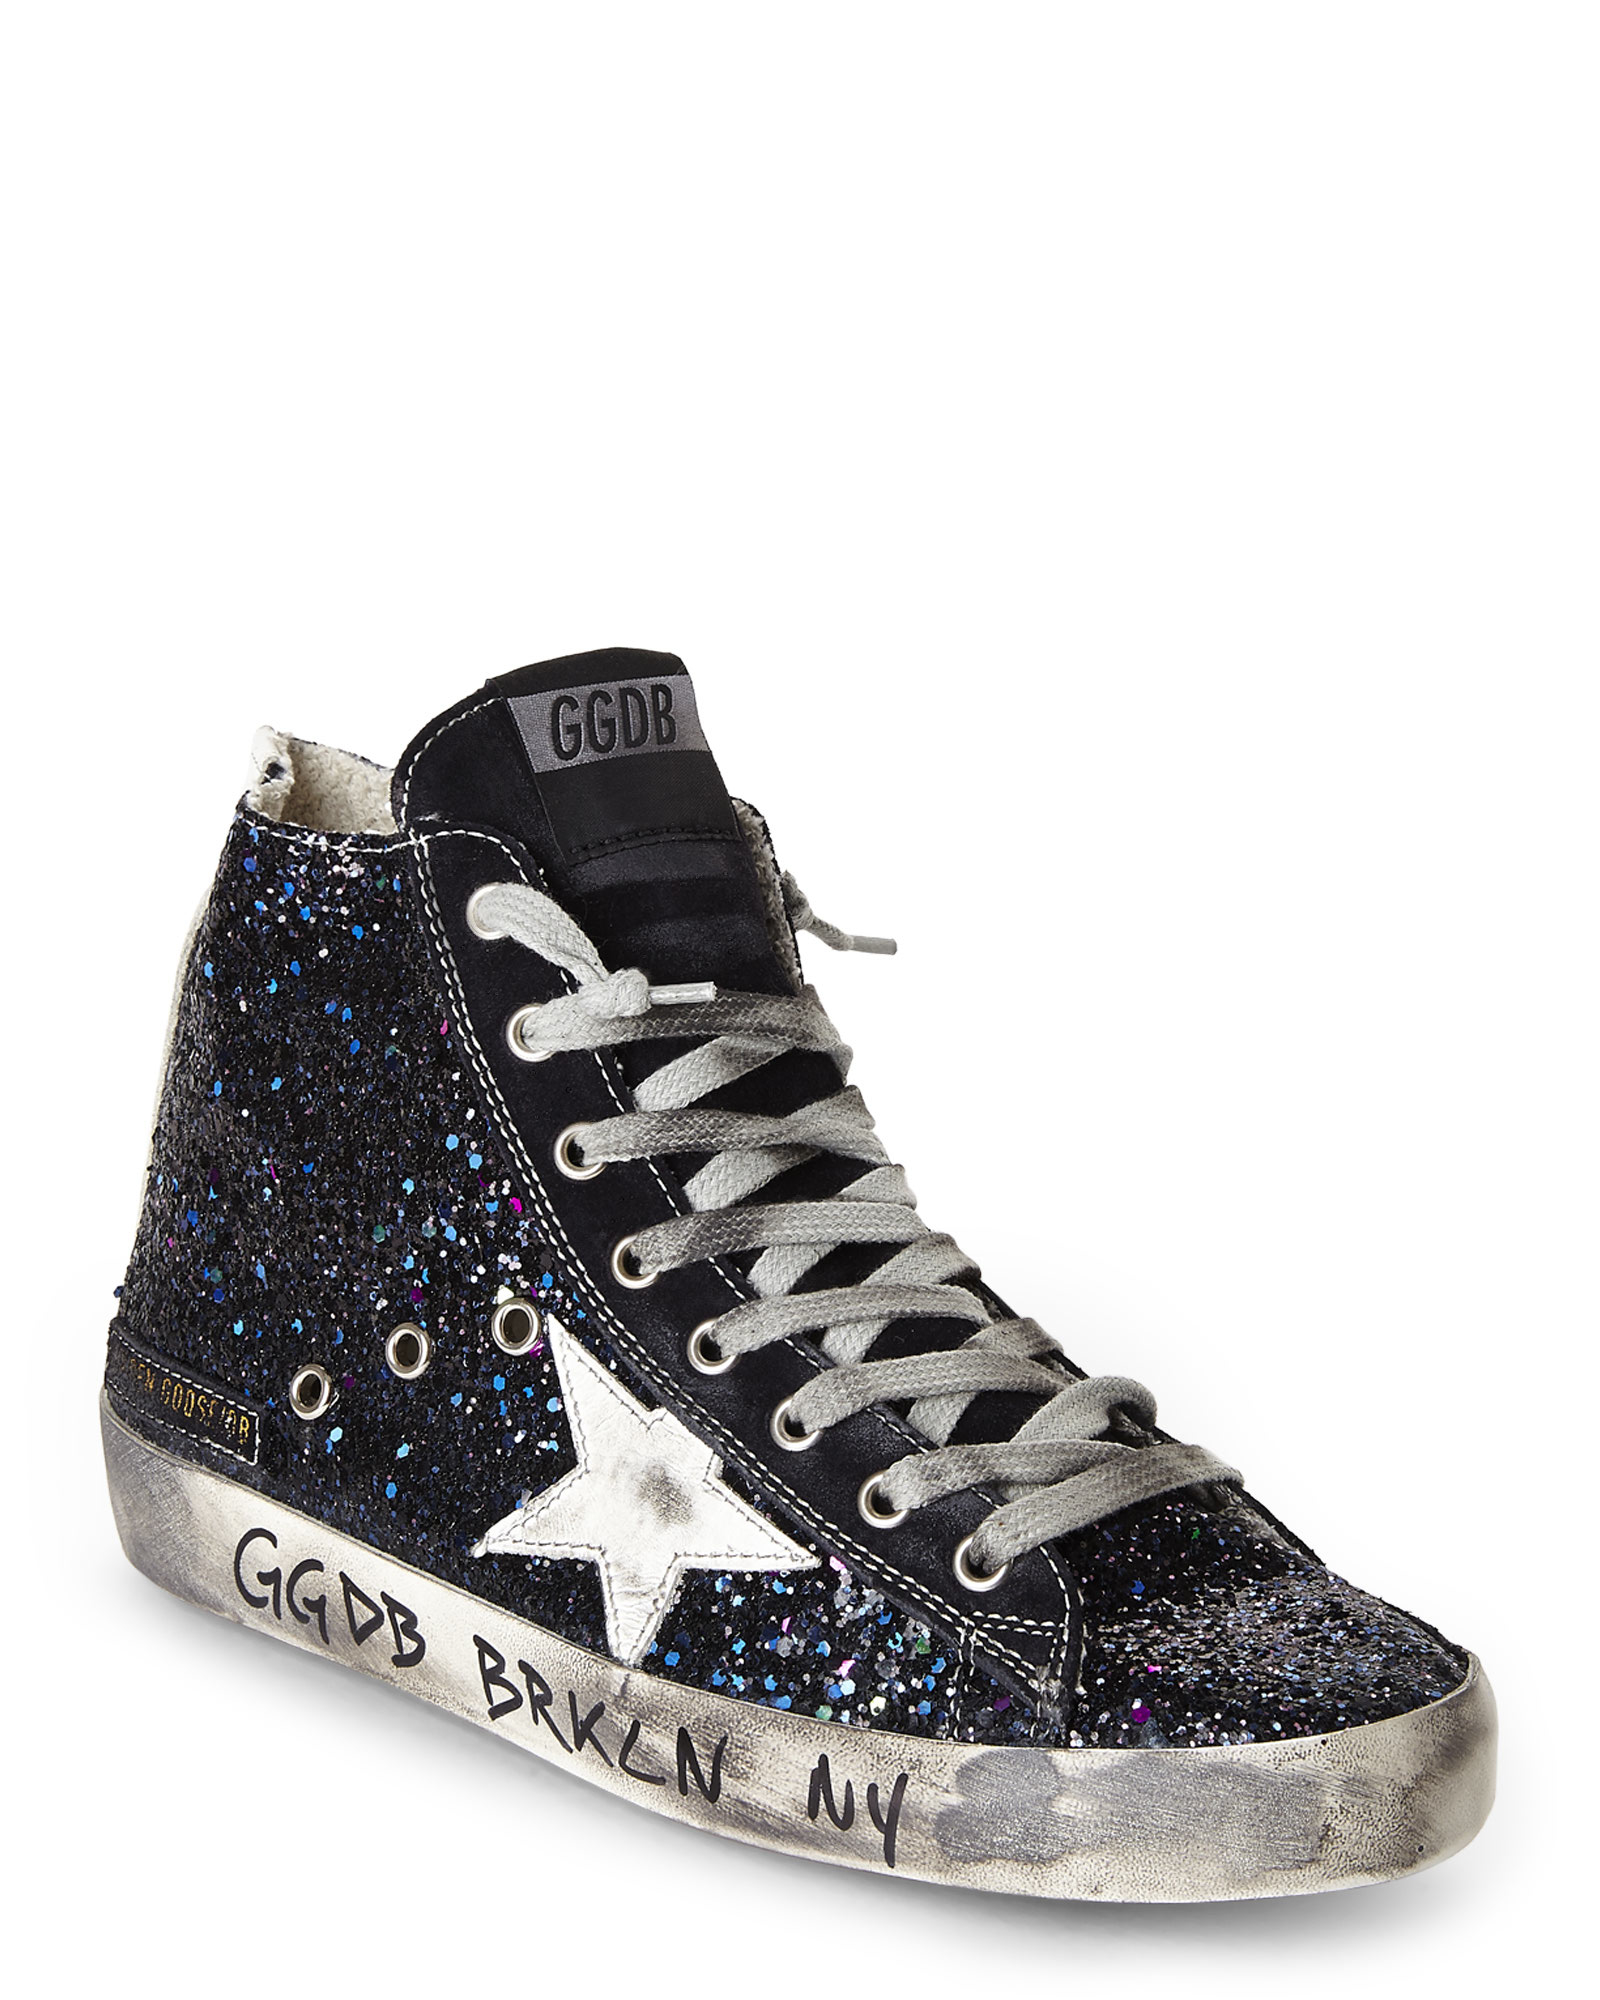 lyst golden goose deluxe brand francy glitter sneakers in black. Black Bedroom Furniture Sets. Home Design Ideas